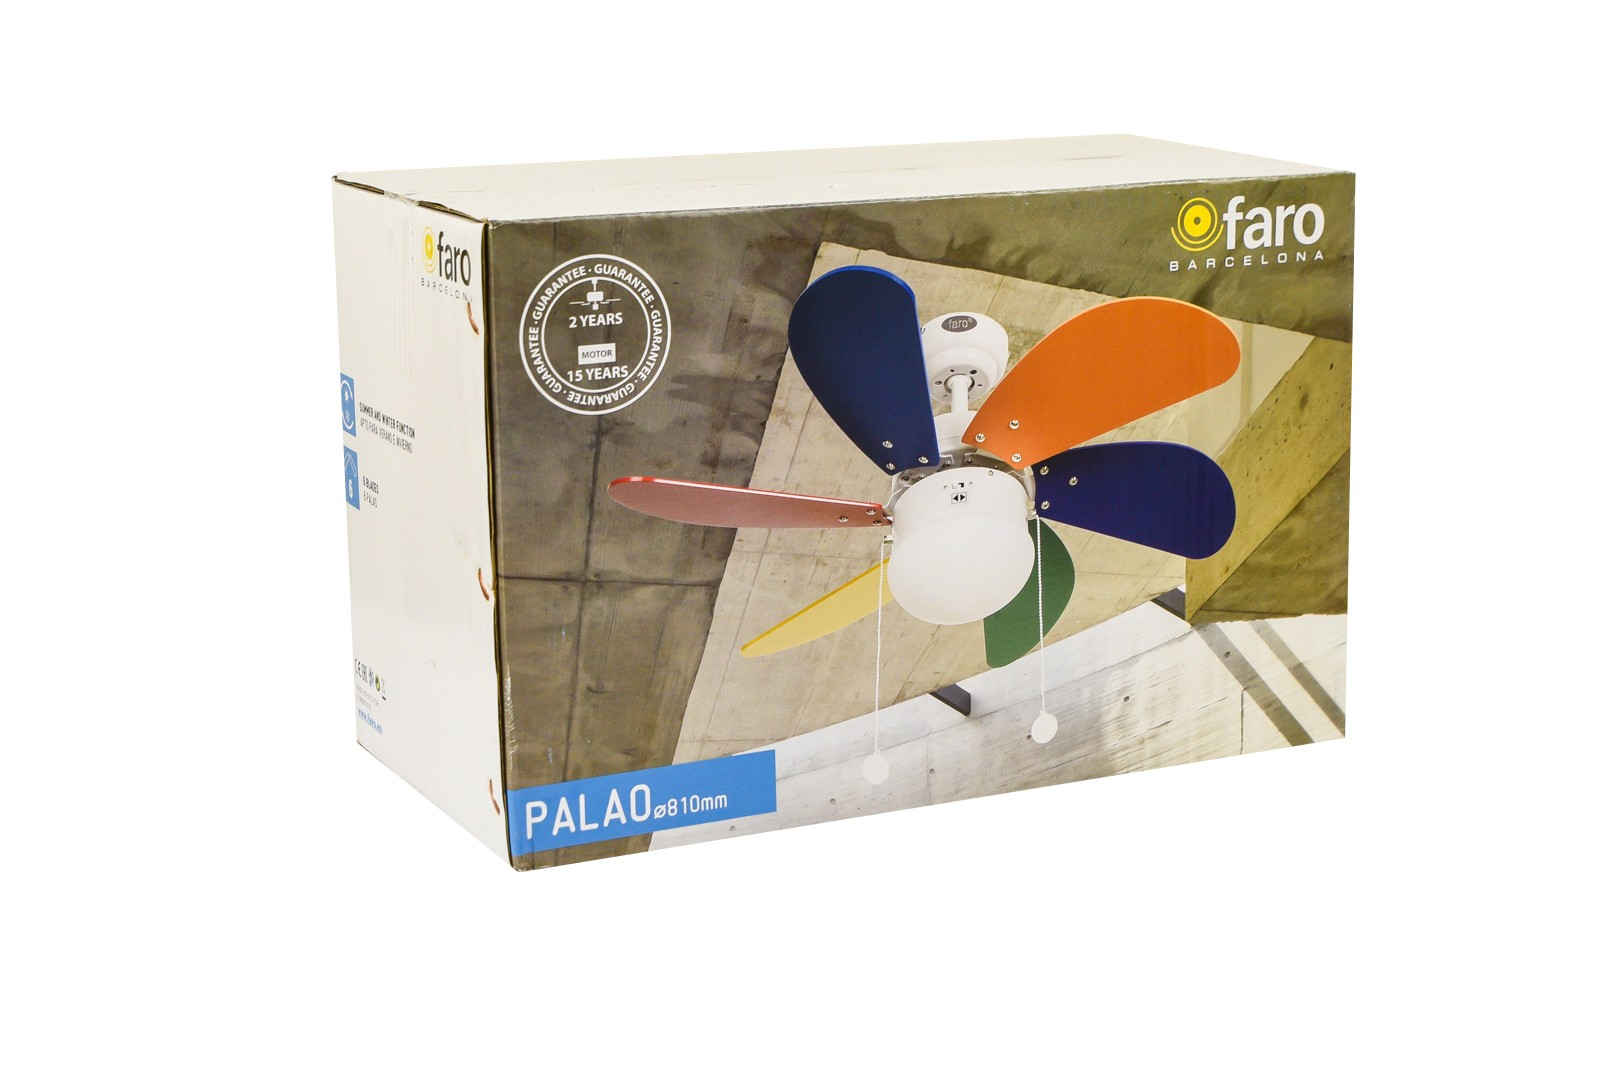 Faro Ceiling Fan Palao Multi Colour 76 Cm 30 Quot With